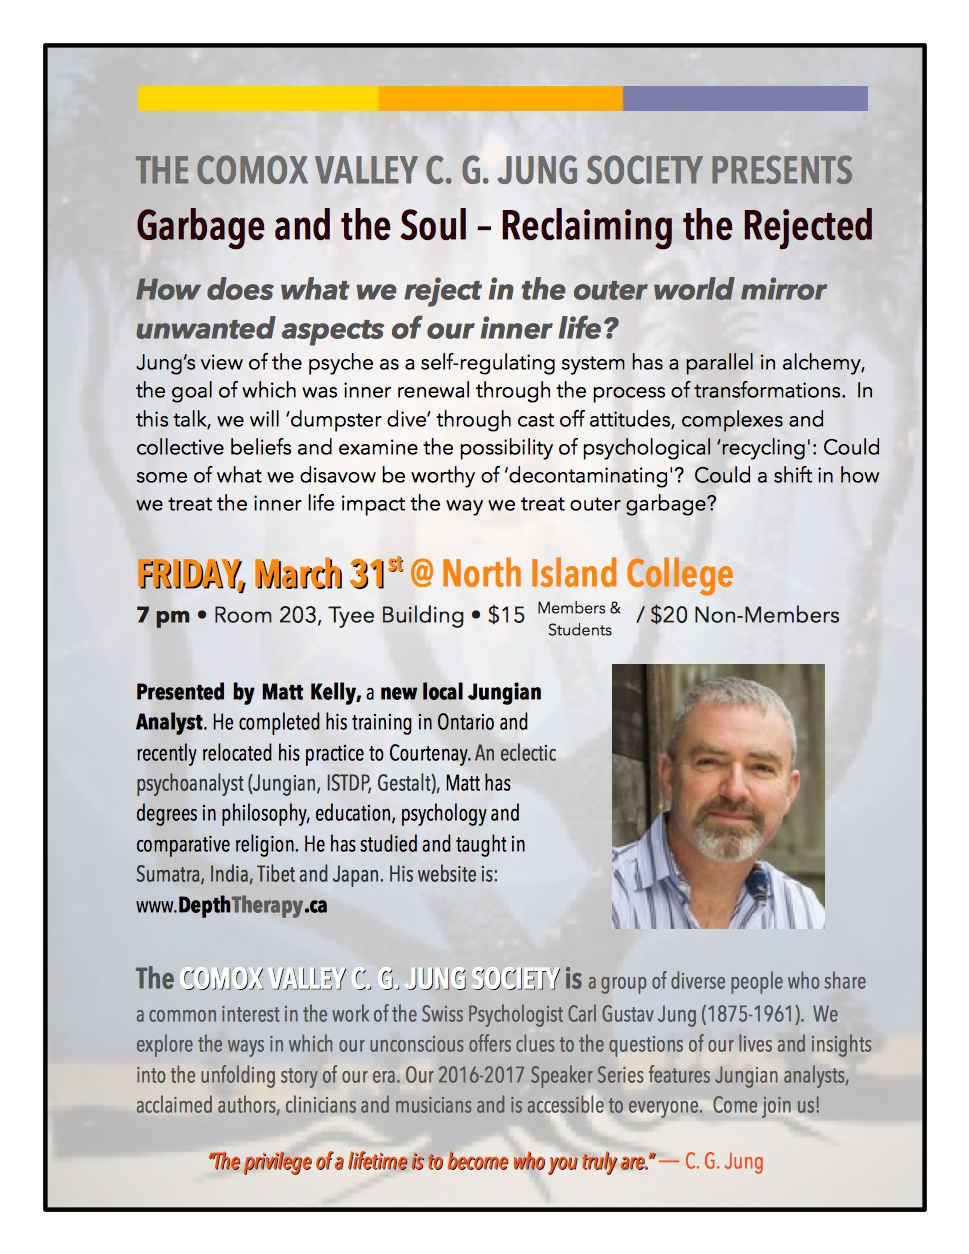 comox valley jung society garbage and the soul reclaiming the rejected